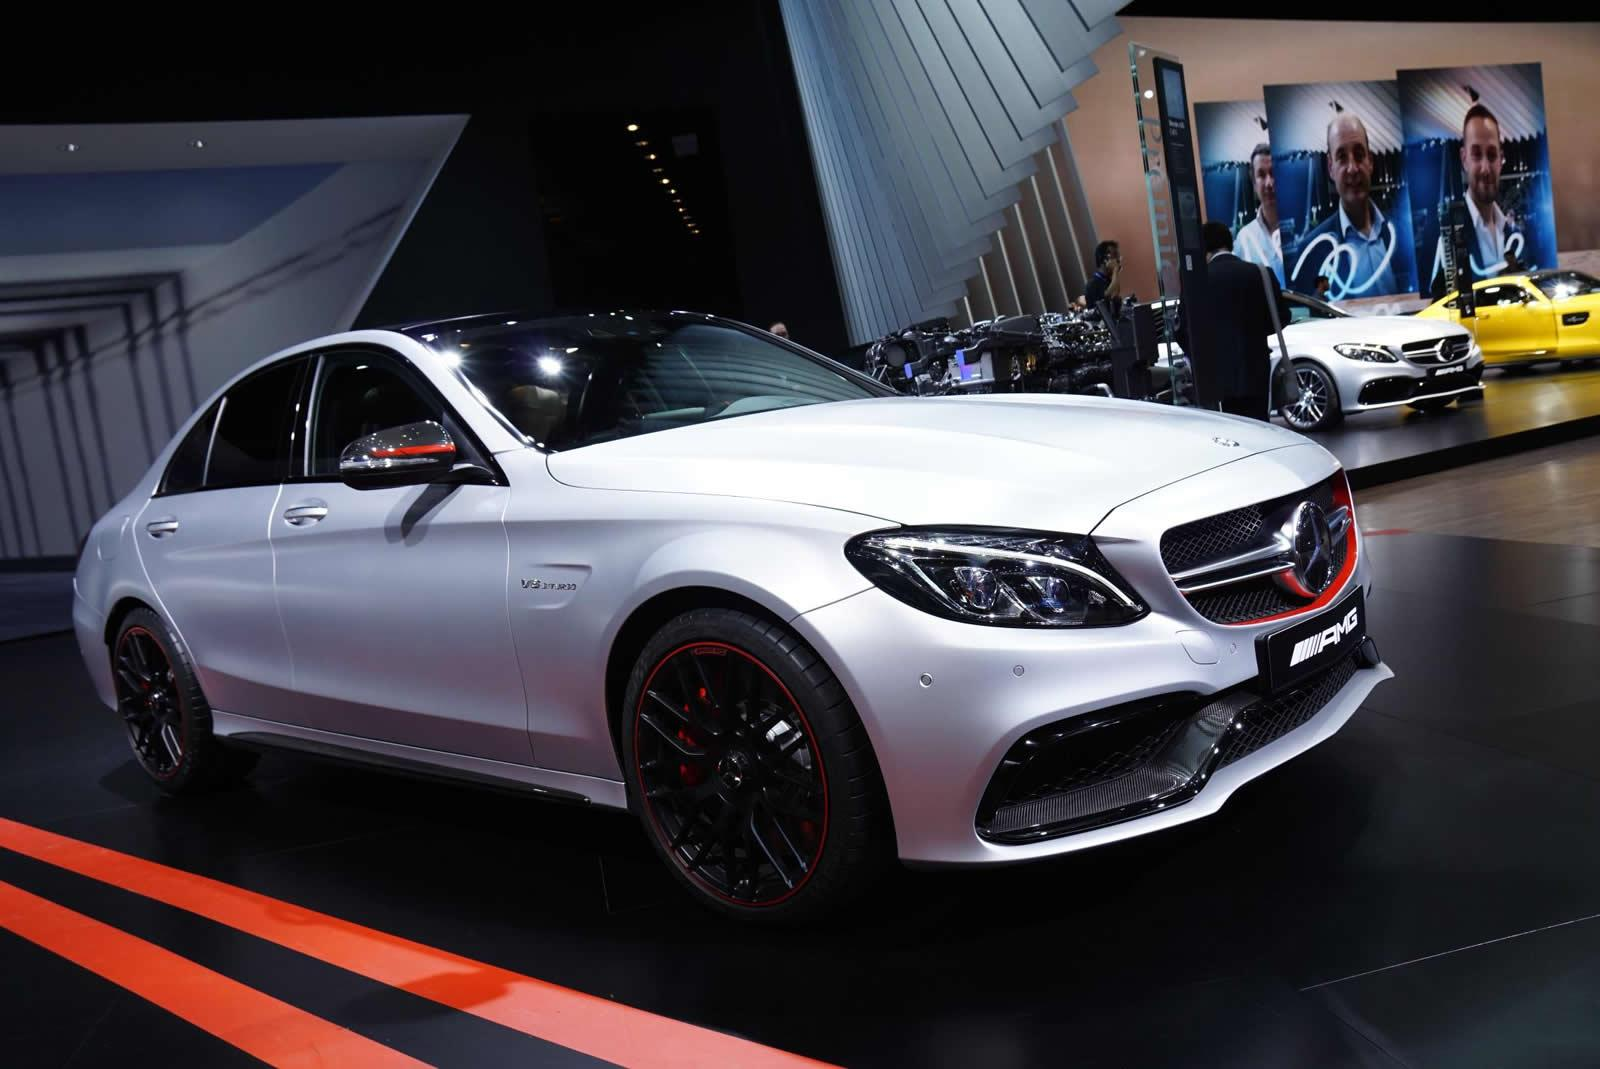 mercedes c63 amg um halterofilista em paris. Black Bedroom Furniture Sets. Home Design Ideas